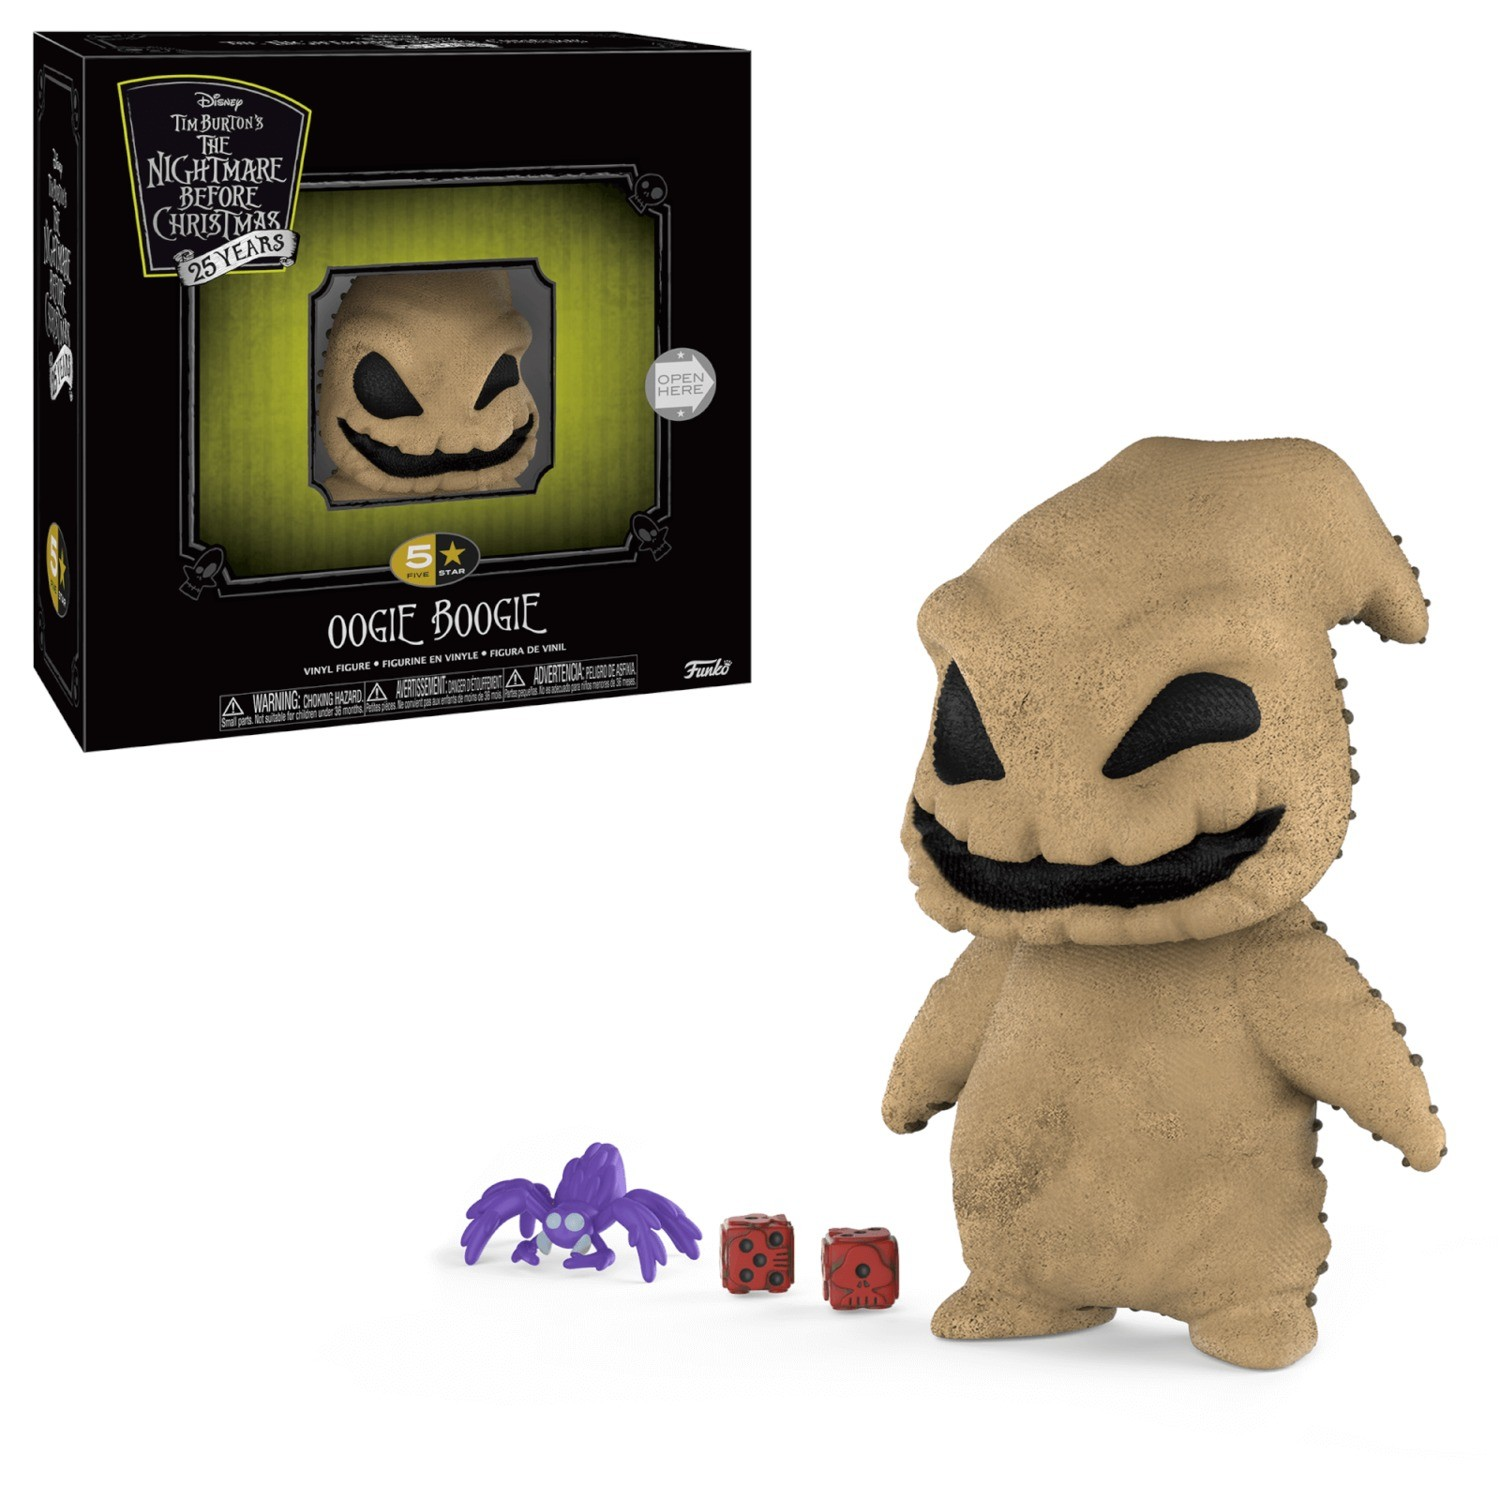 Oogie Boogie - The Nightmare Before Christmas action figure 32854